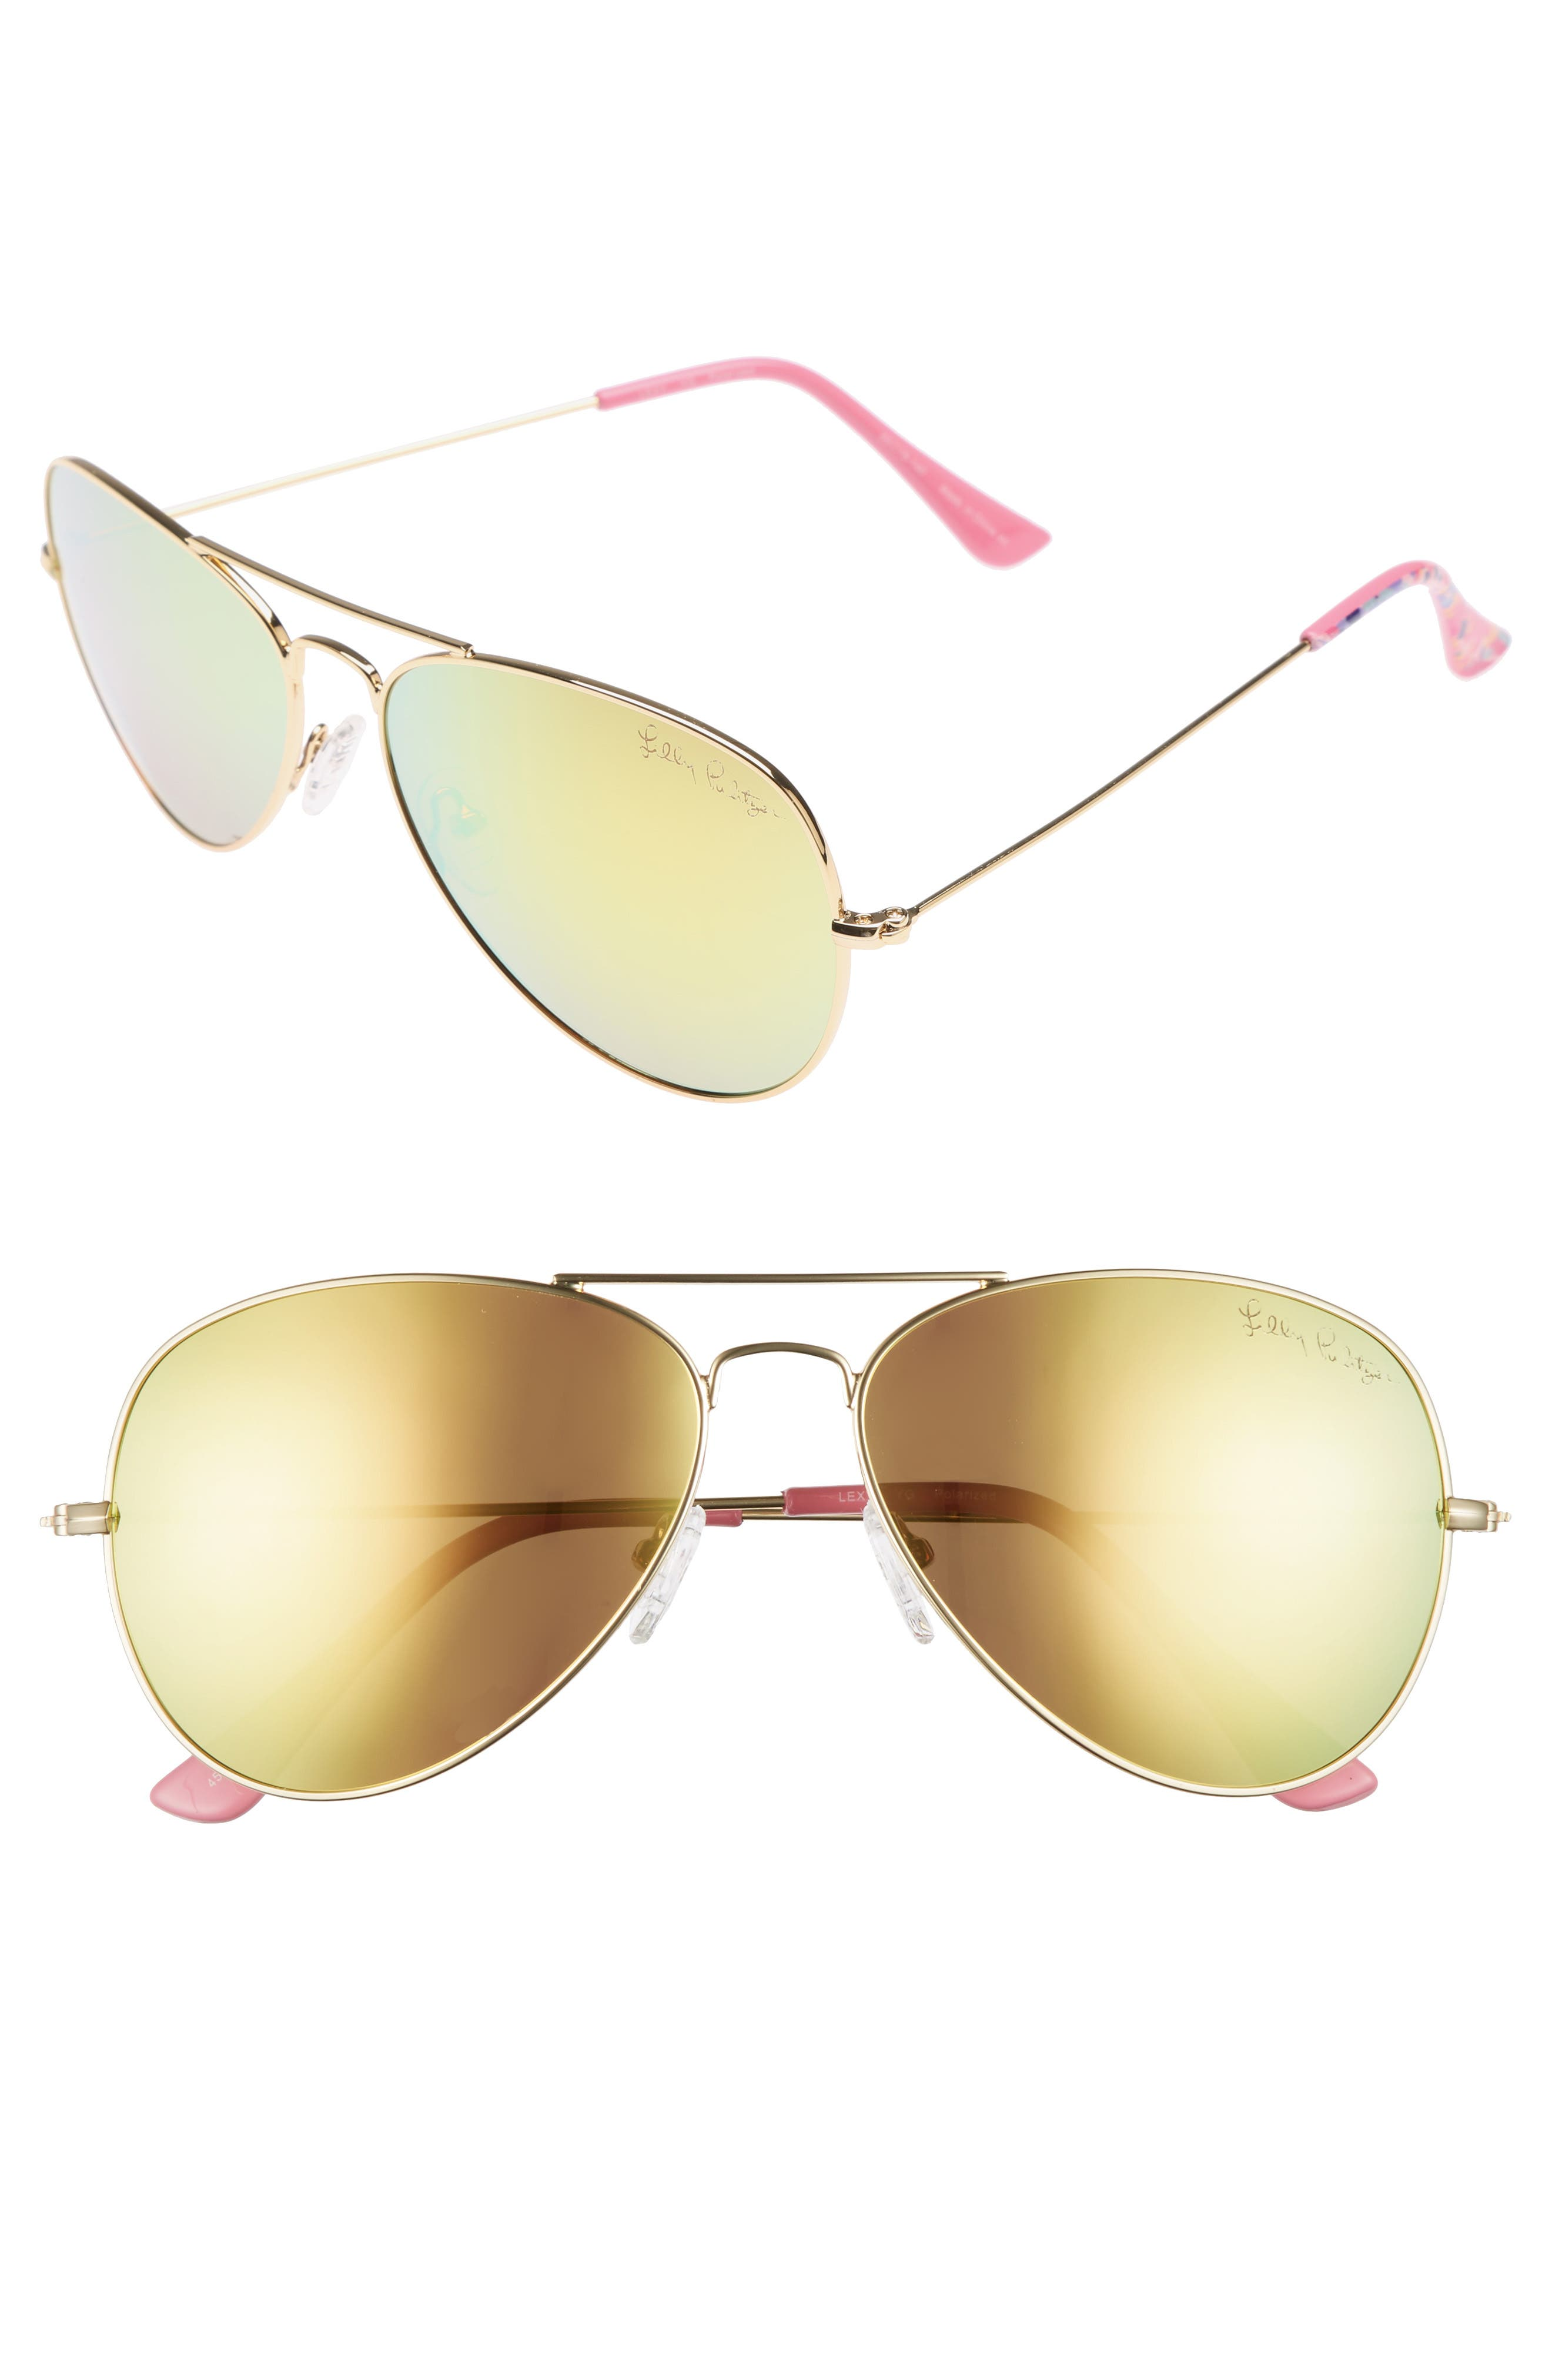 Lexy 59mm Polarized Aviator Sunglasses,                             Main thumbnail 1, color,                             Pink